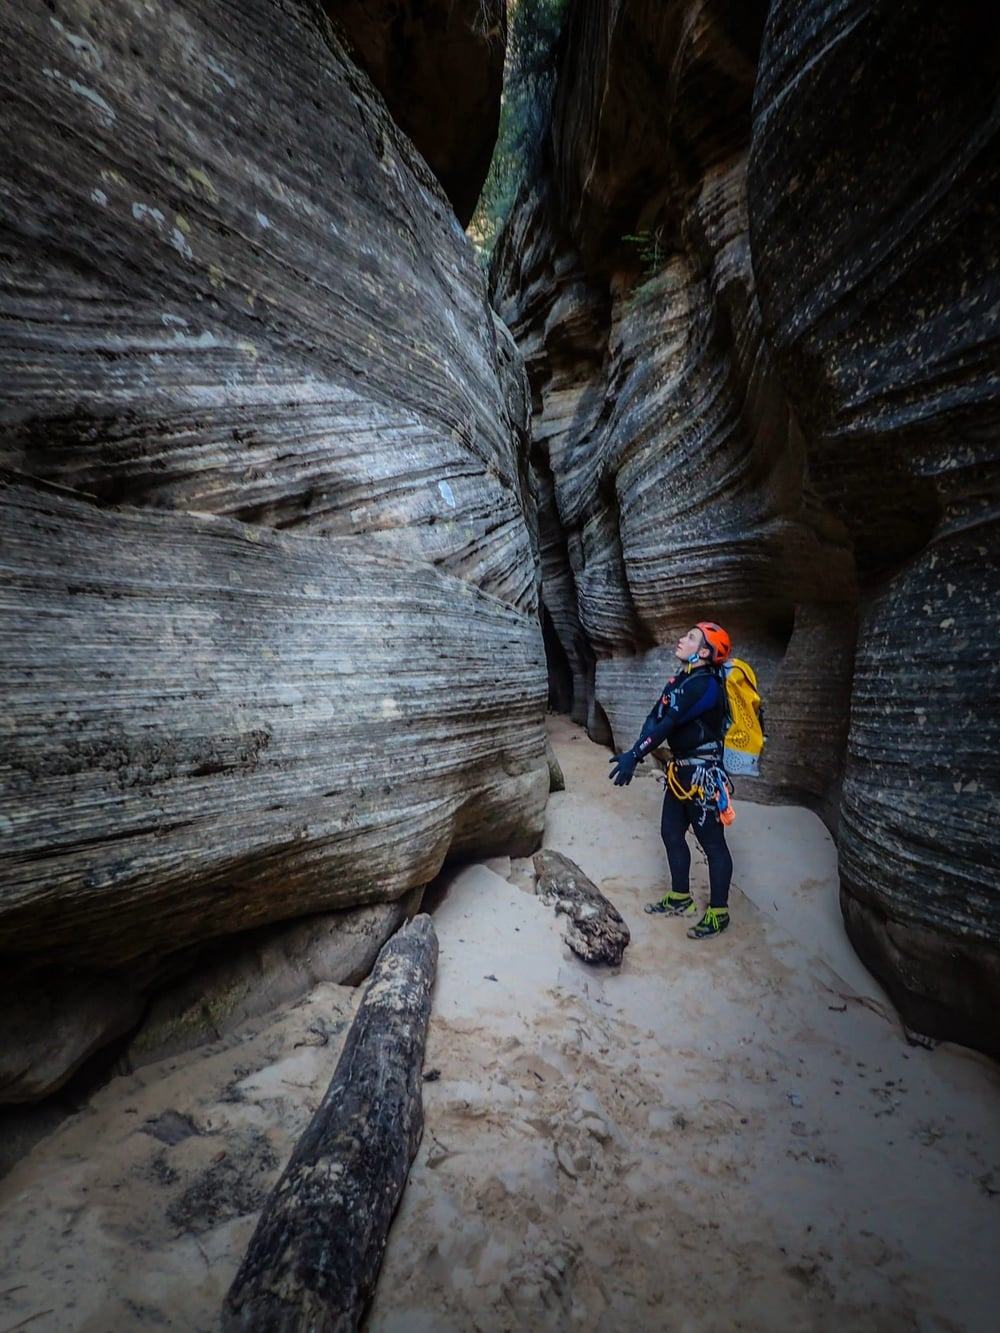 Admiring the beauty in Imlay, one of the most beautiful slot canyons in Zion National Park. Photo by Bronic Bednarek.